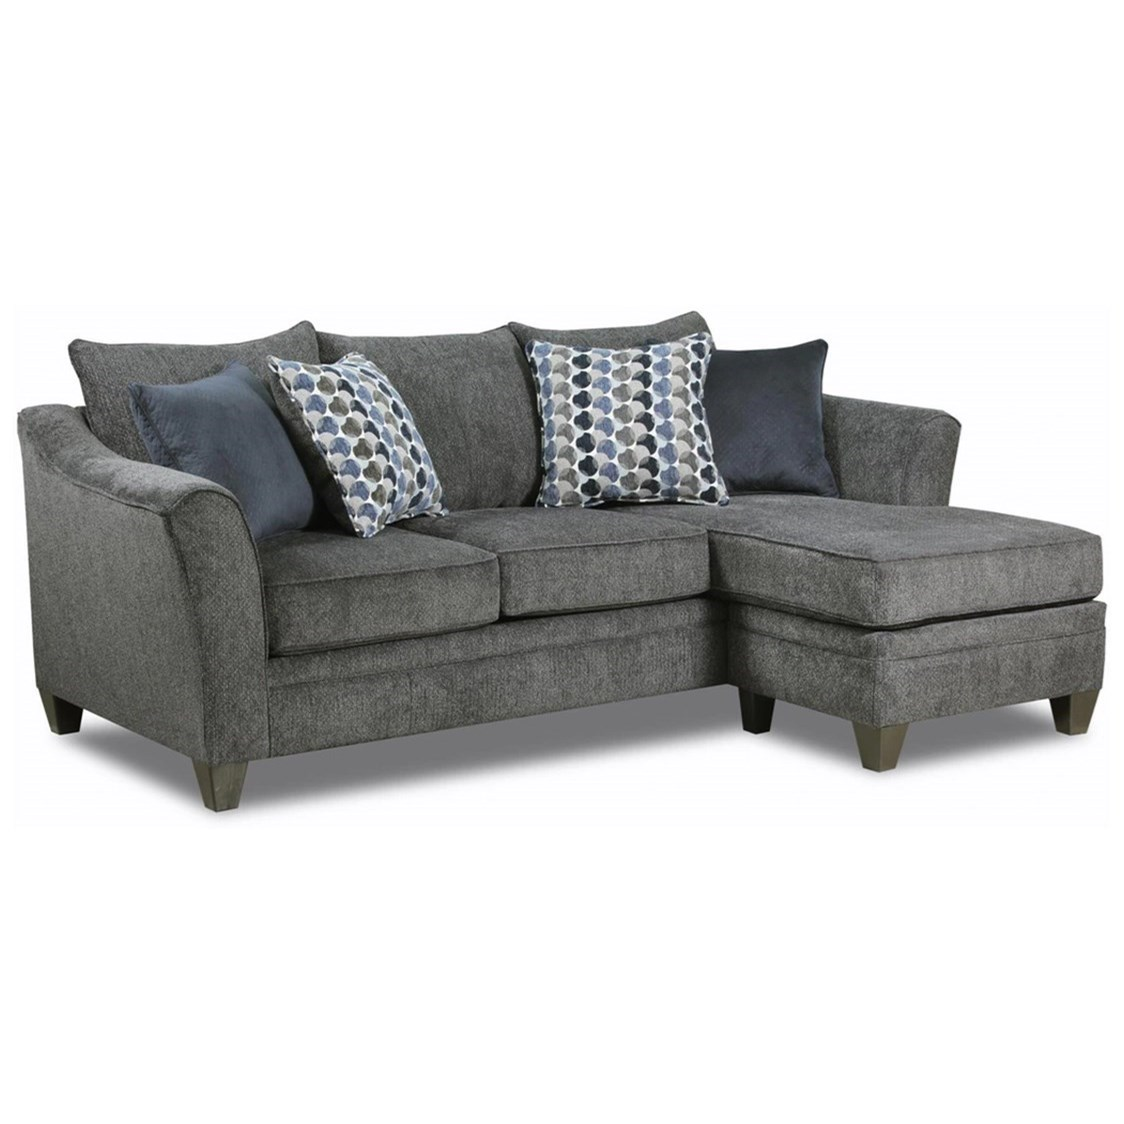 Simmons United Furniture Reviews Simmons Upholstery